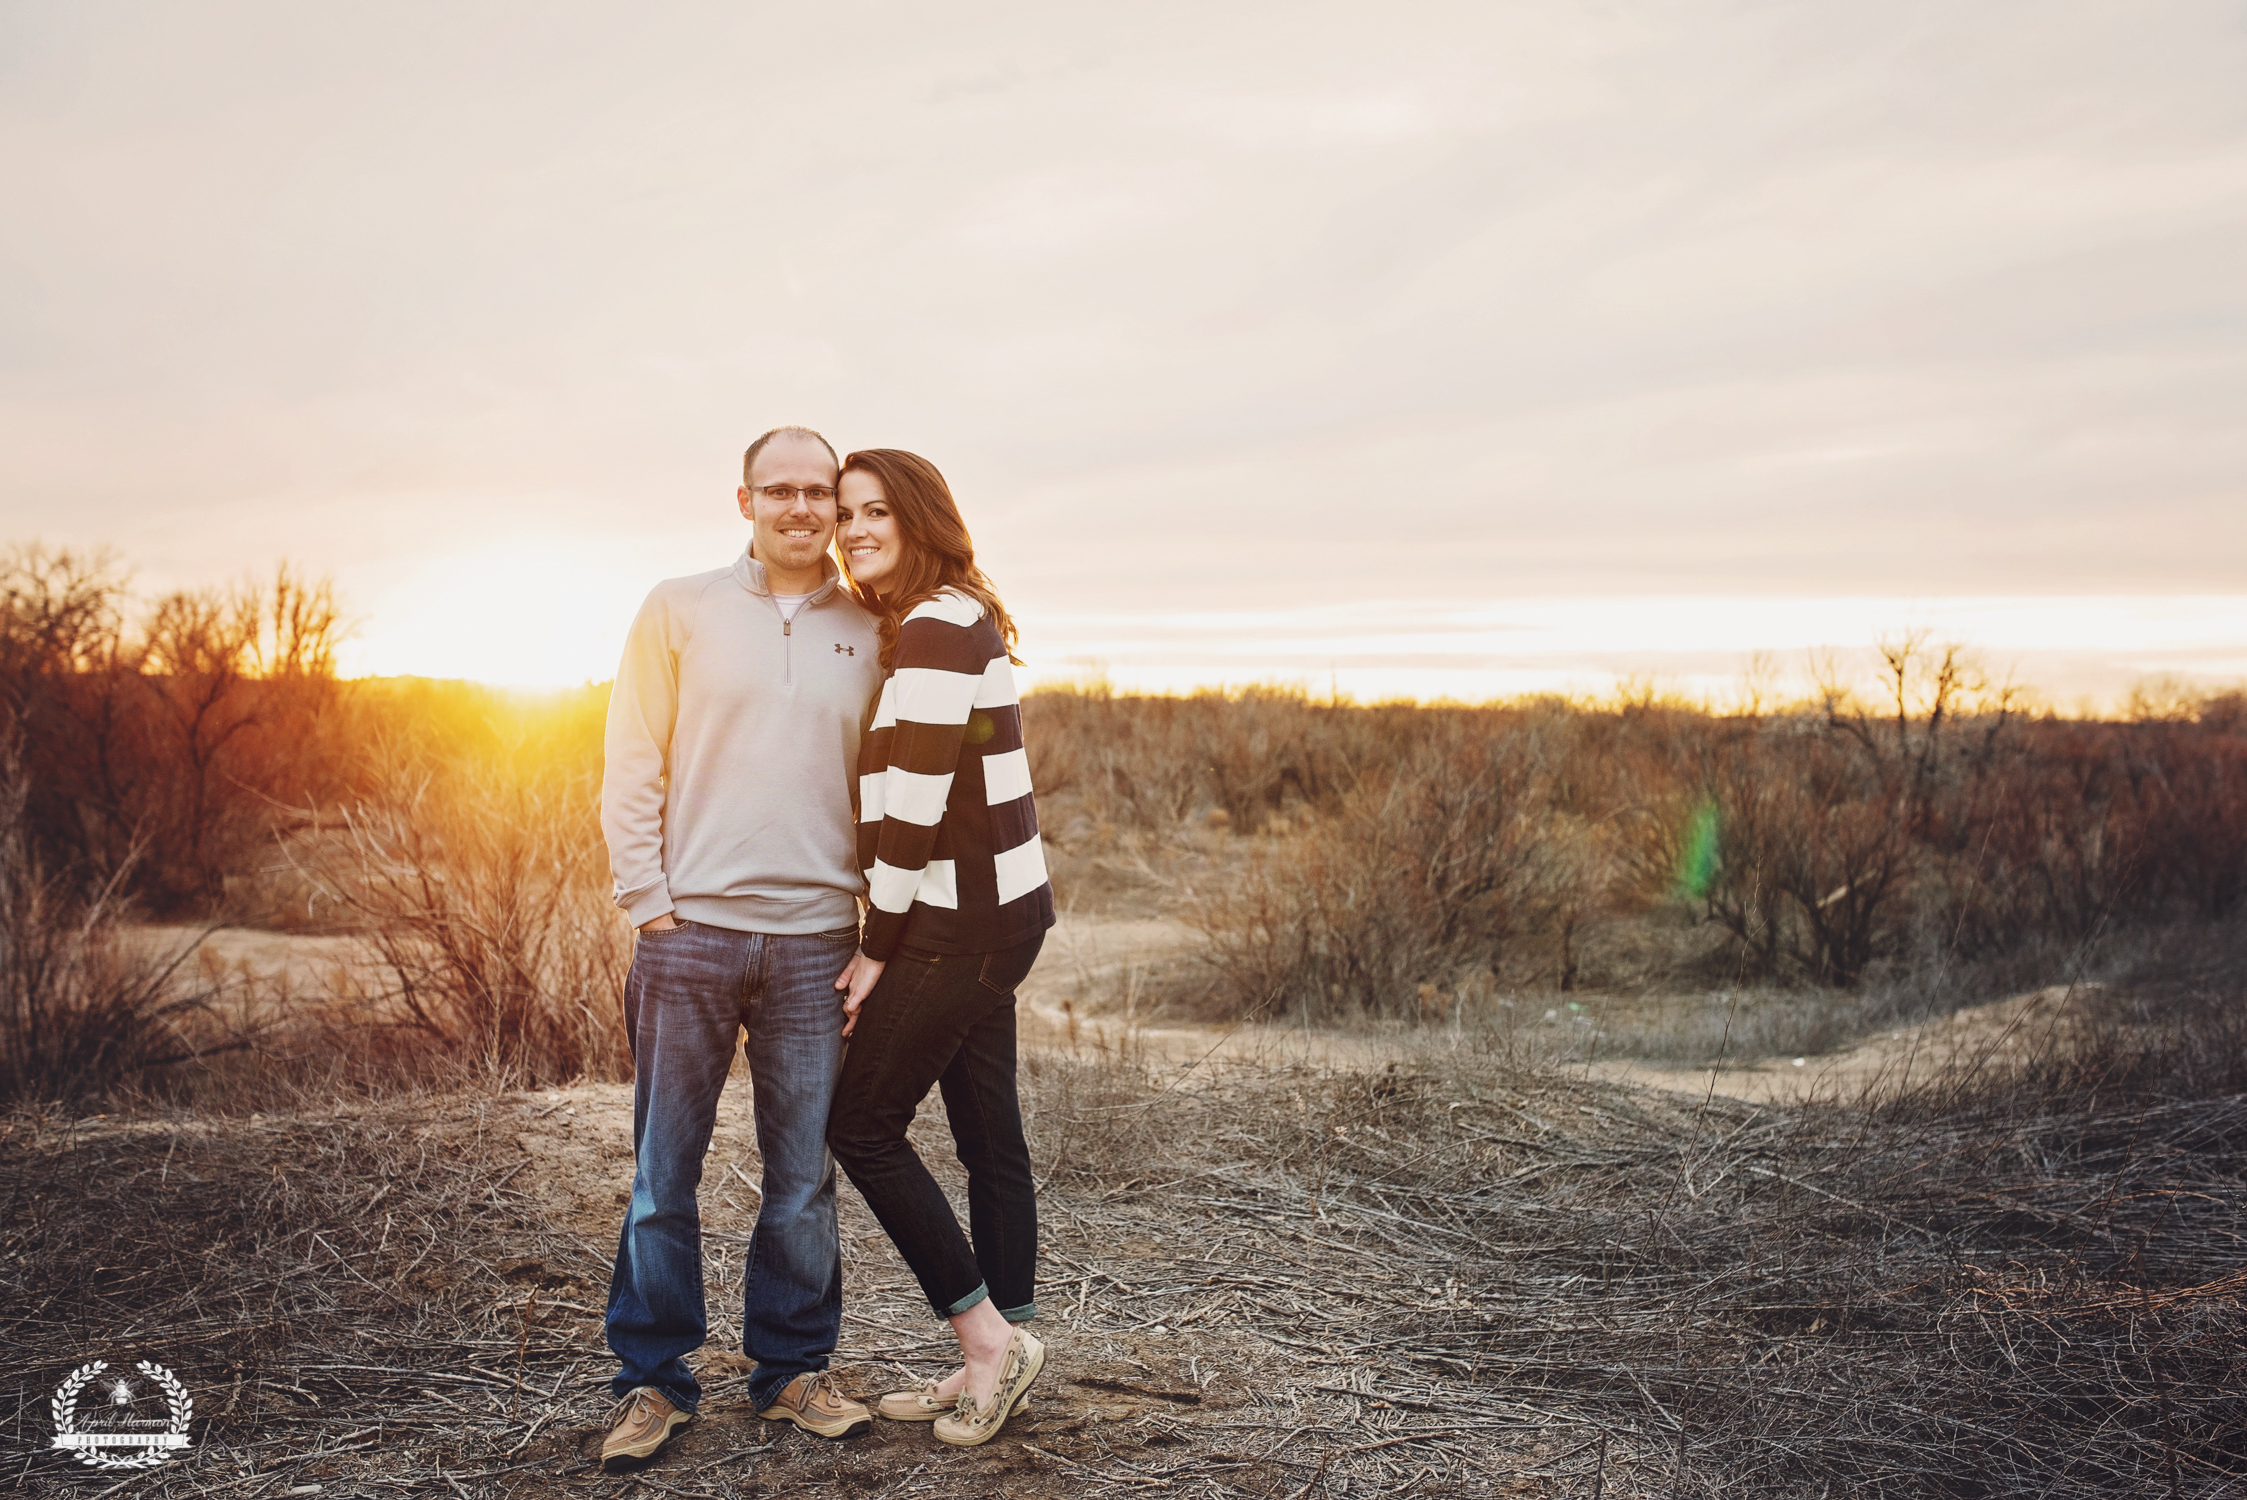 southwest-kansas-engagement-photography20.jpg